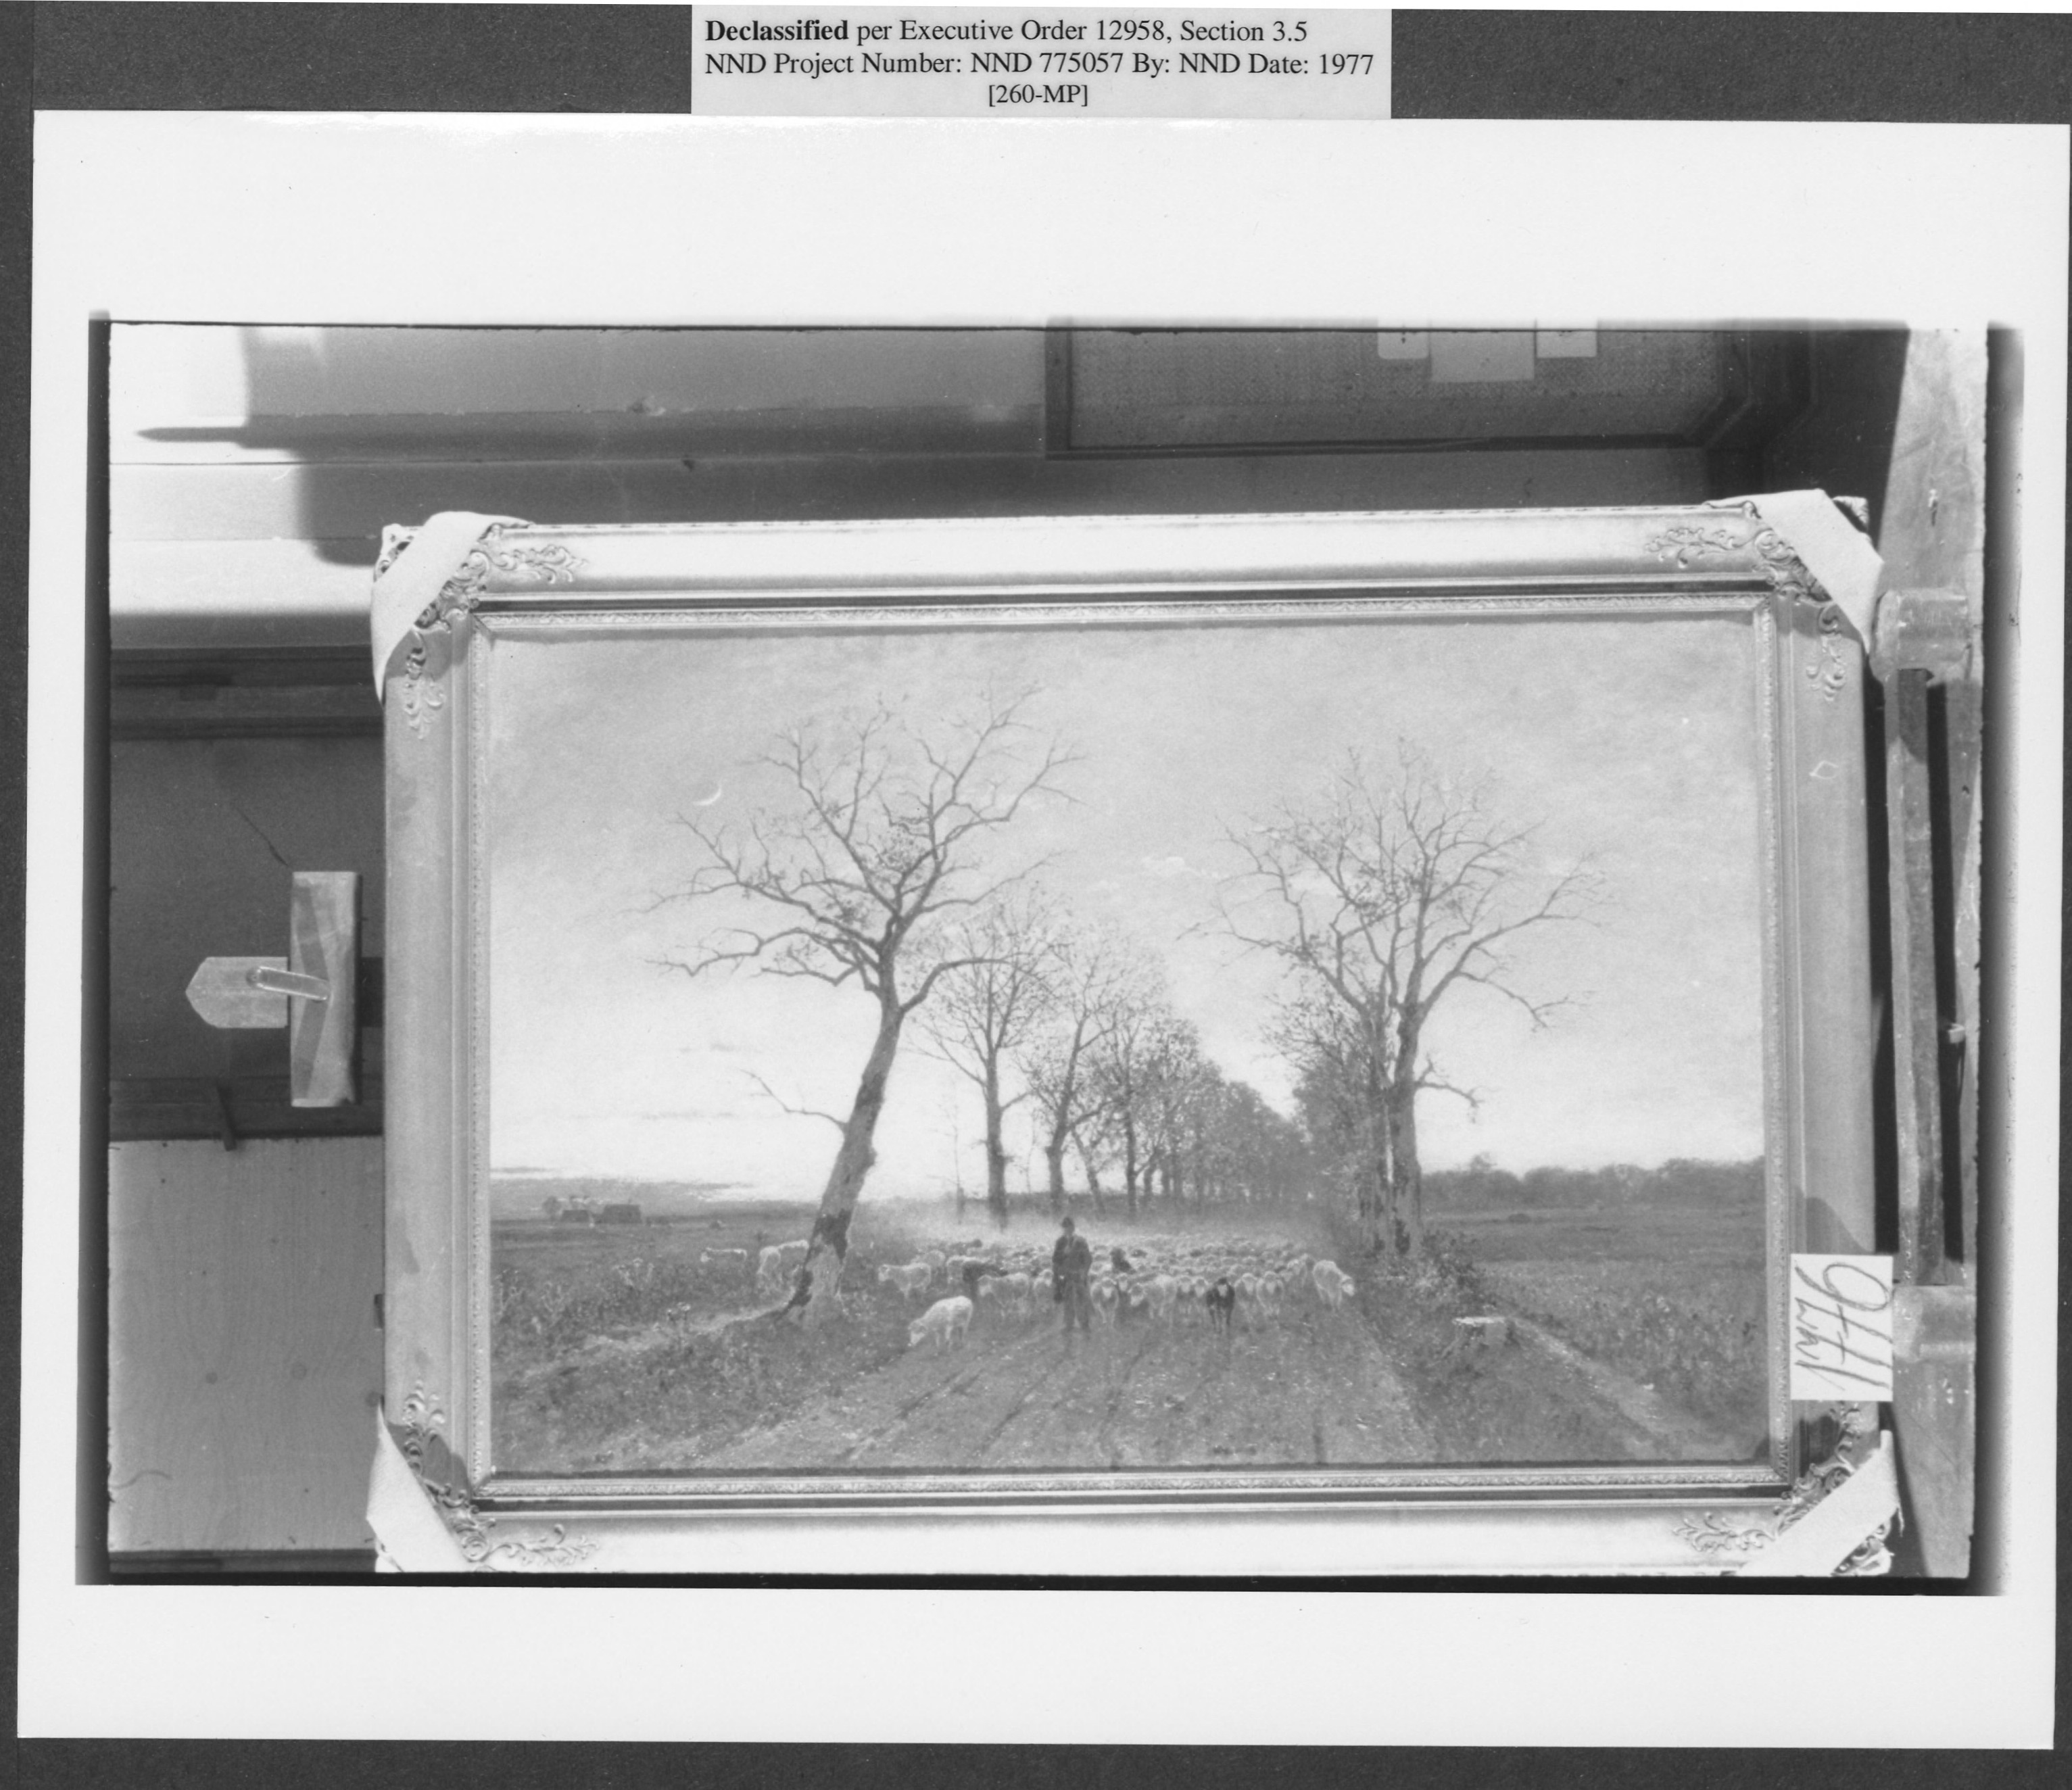 Photographs: Reference Number(s) 260-MP-1776